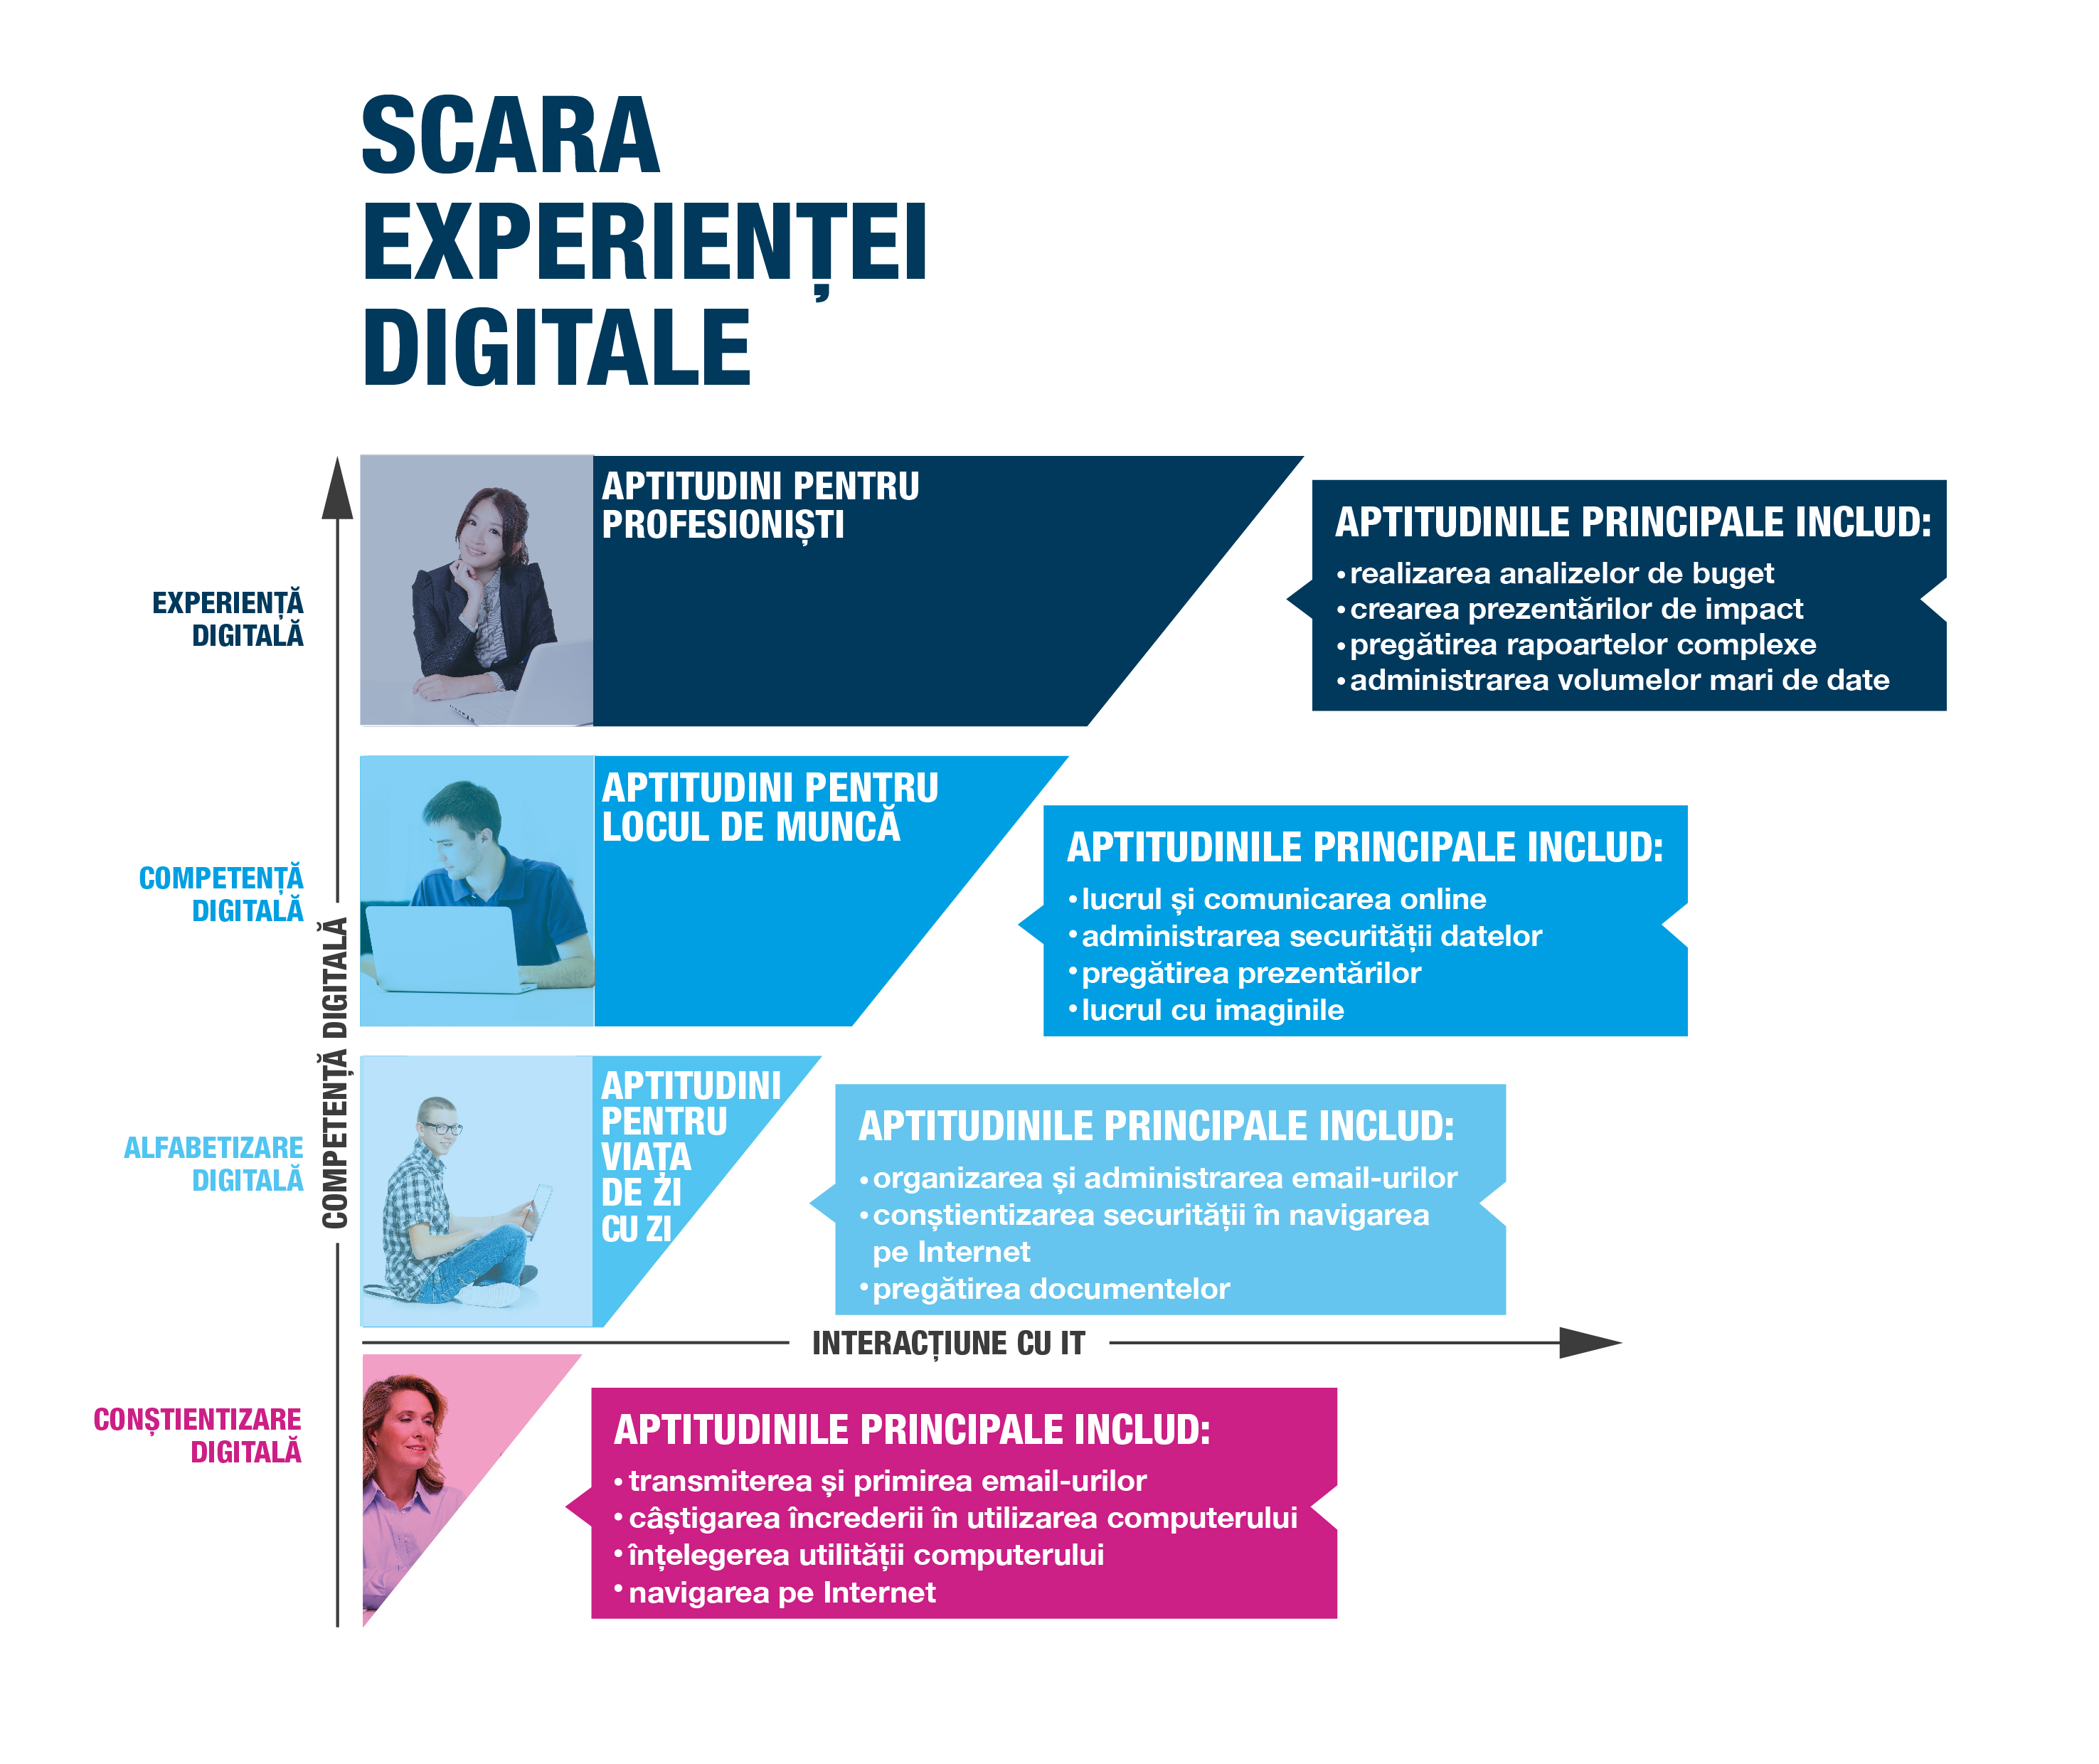 Competente digitale